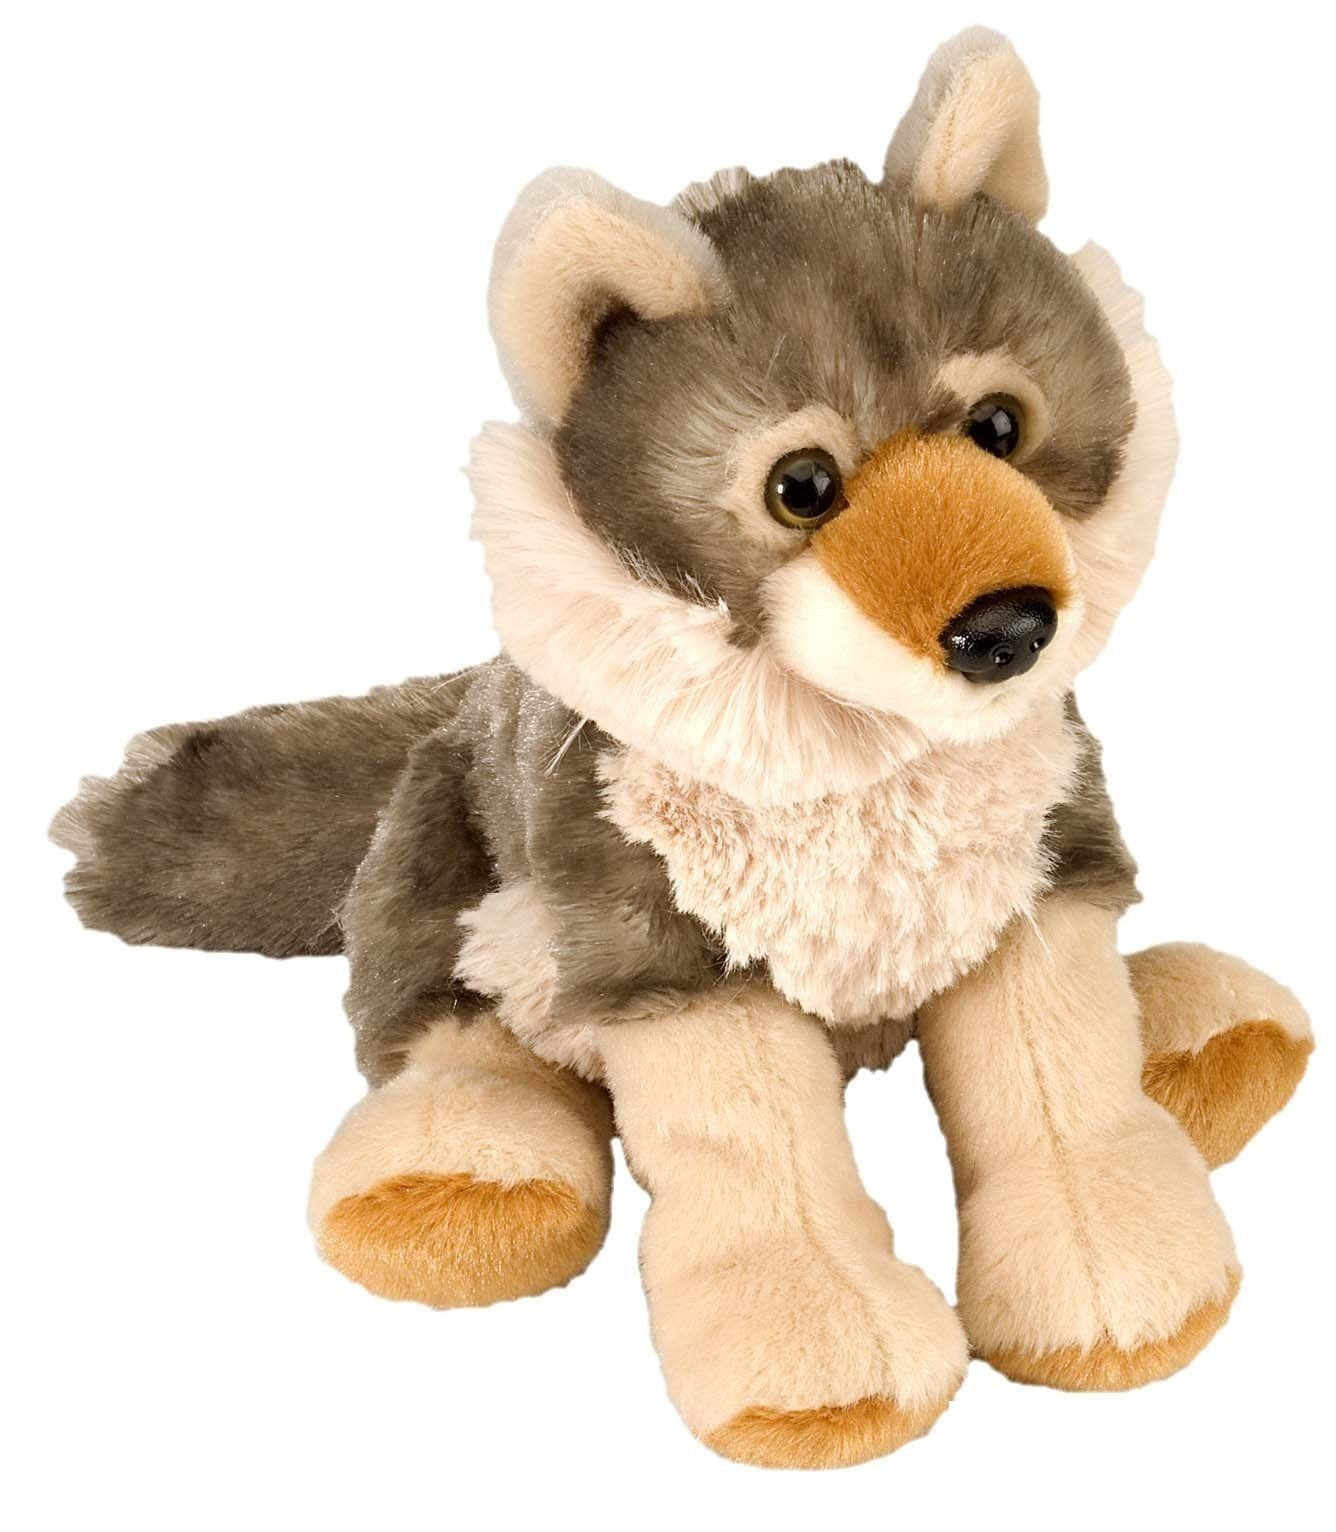 Wild Republic Stuffed Animal & Plush Toy Play Accessories